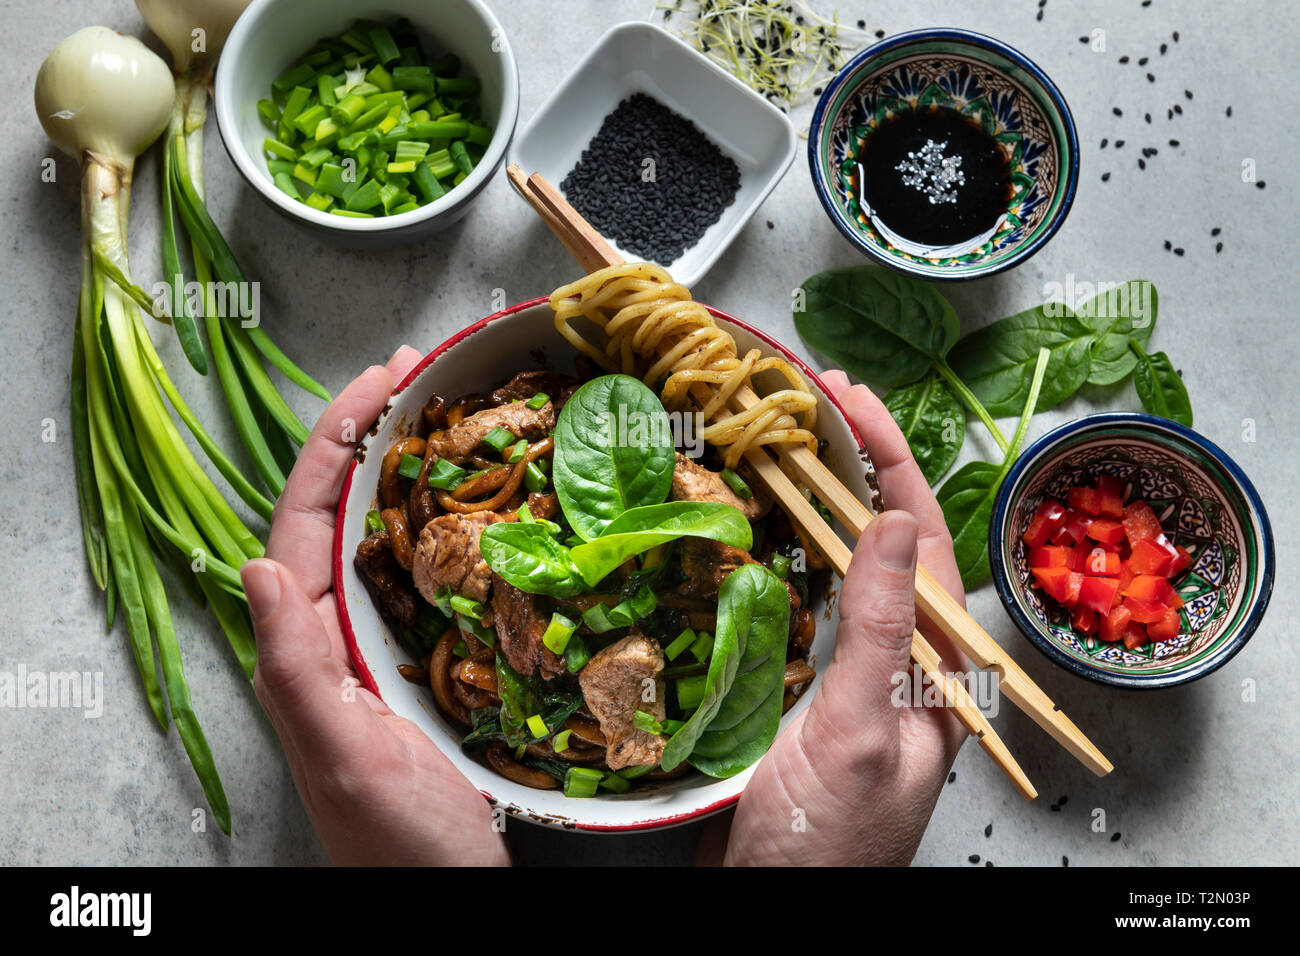 Hands holding bowl withc chinese udon noodles and beef, vegatables on the gray table.  Top view Stock Photo